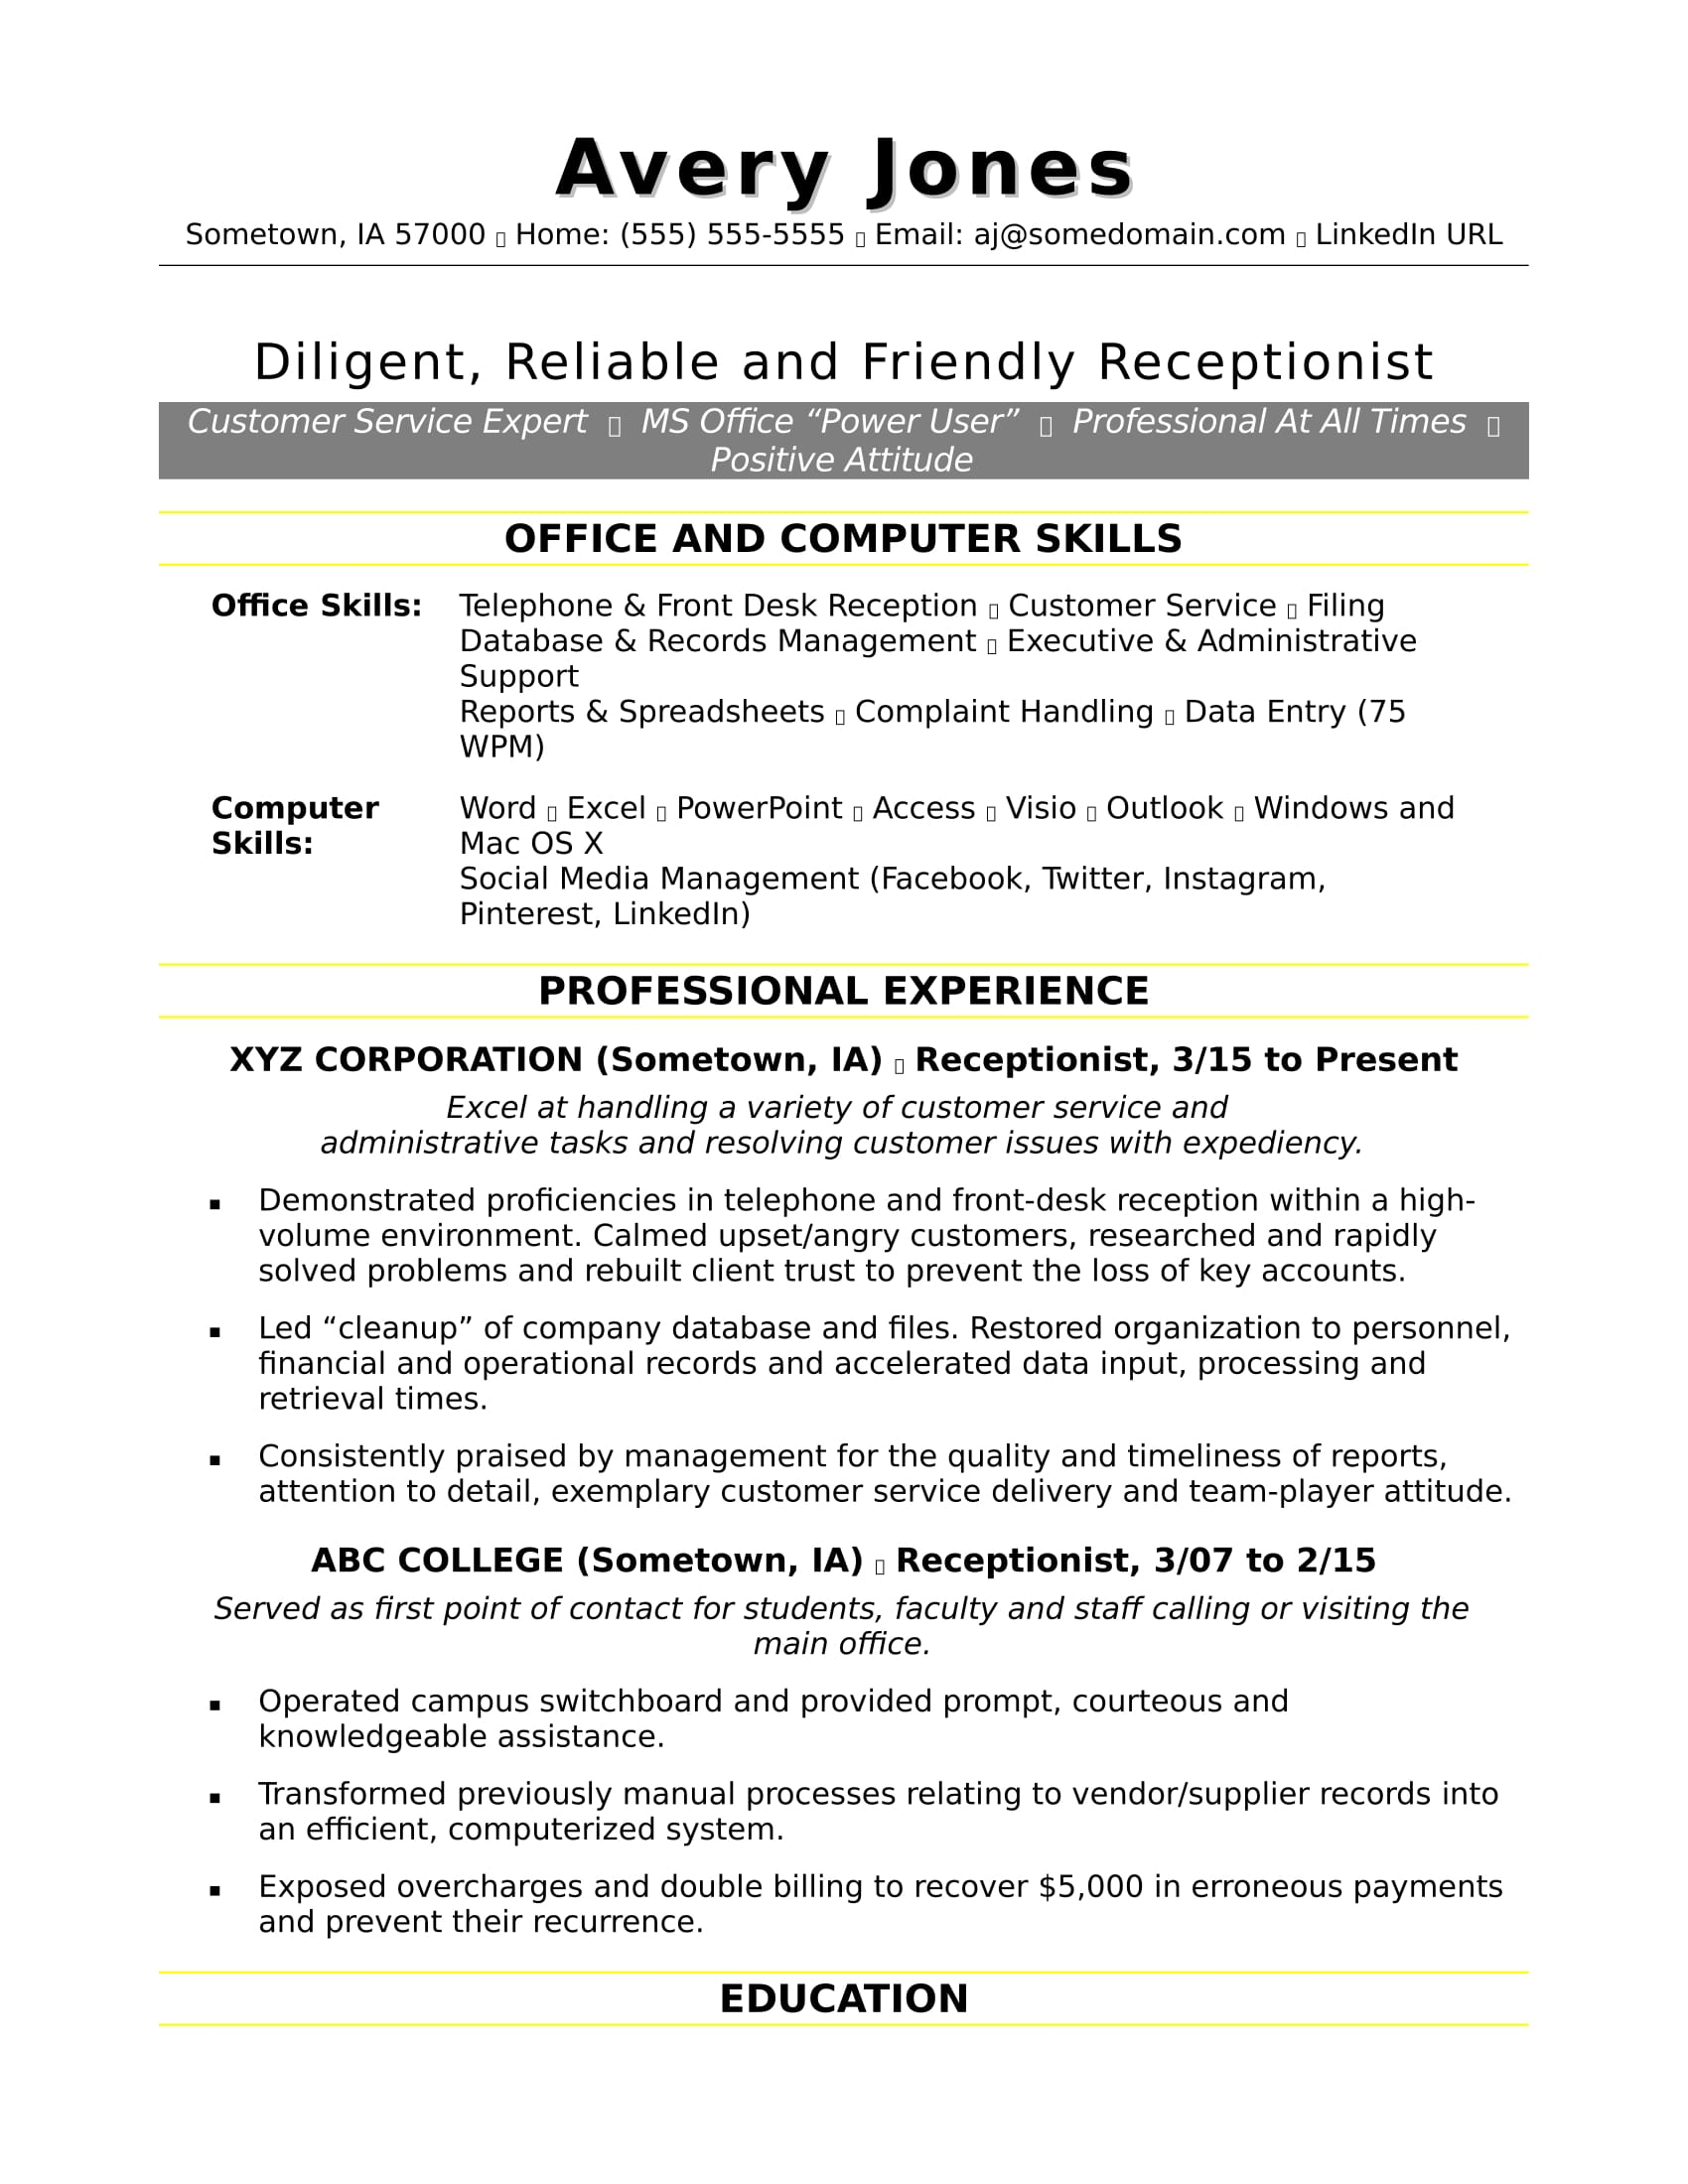 Sample Resume For A Receptionist  How To Put Education On Resume